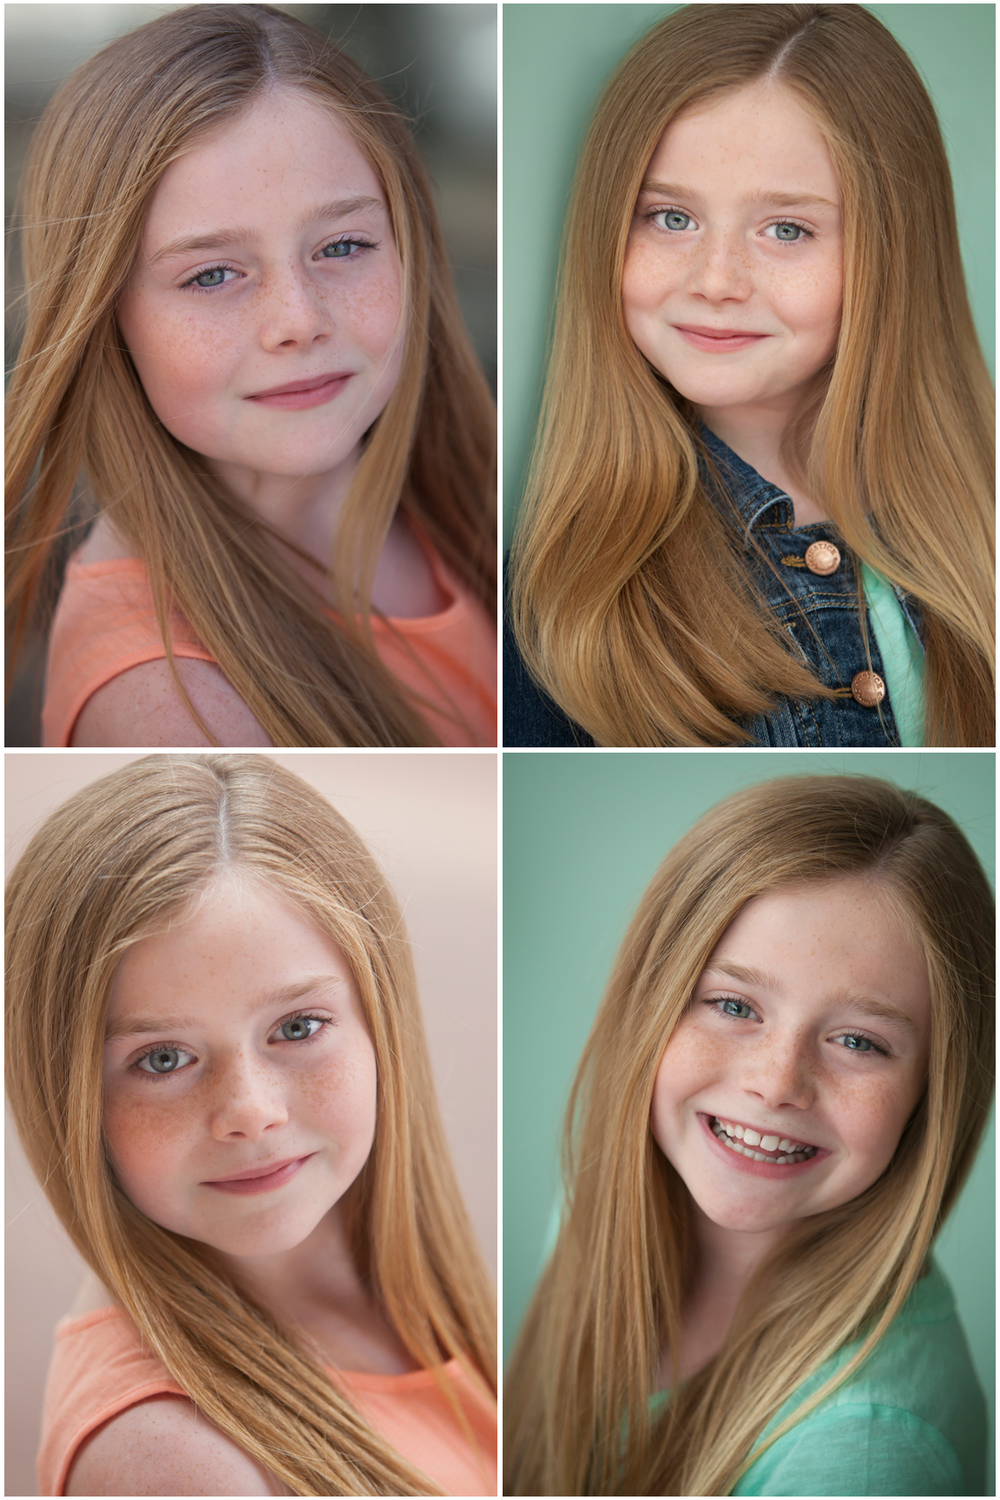 Denver Child Actor Urban Headshots | Photographer Jennifer Koskinen | Merritt Portrait Studio merrittportraitstudio.com